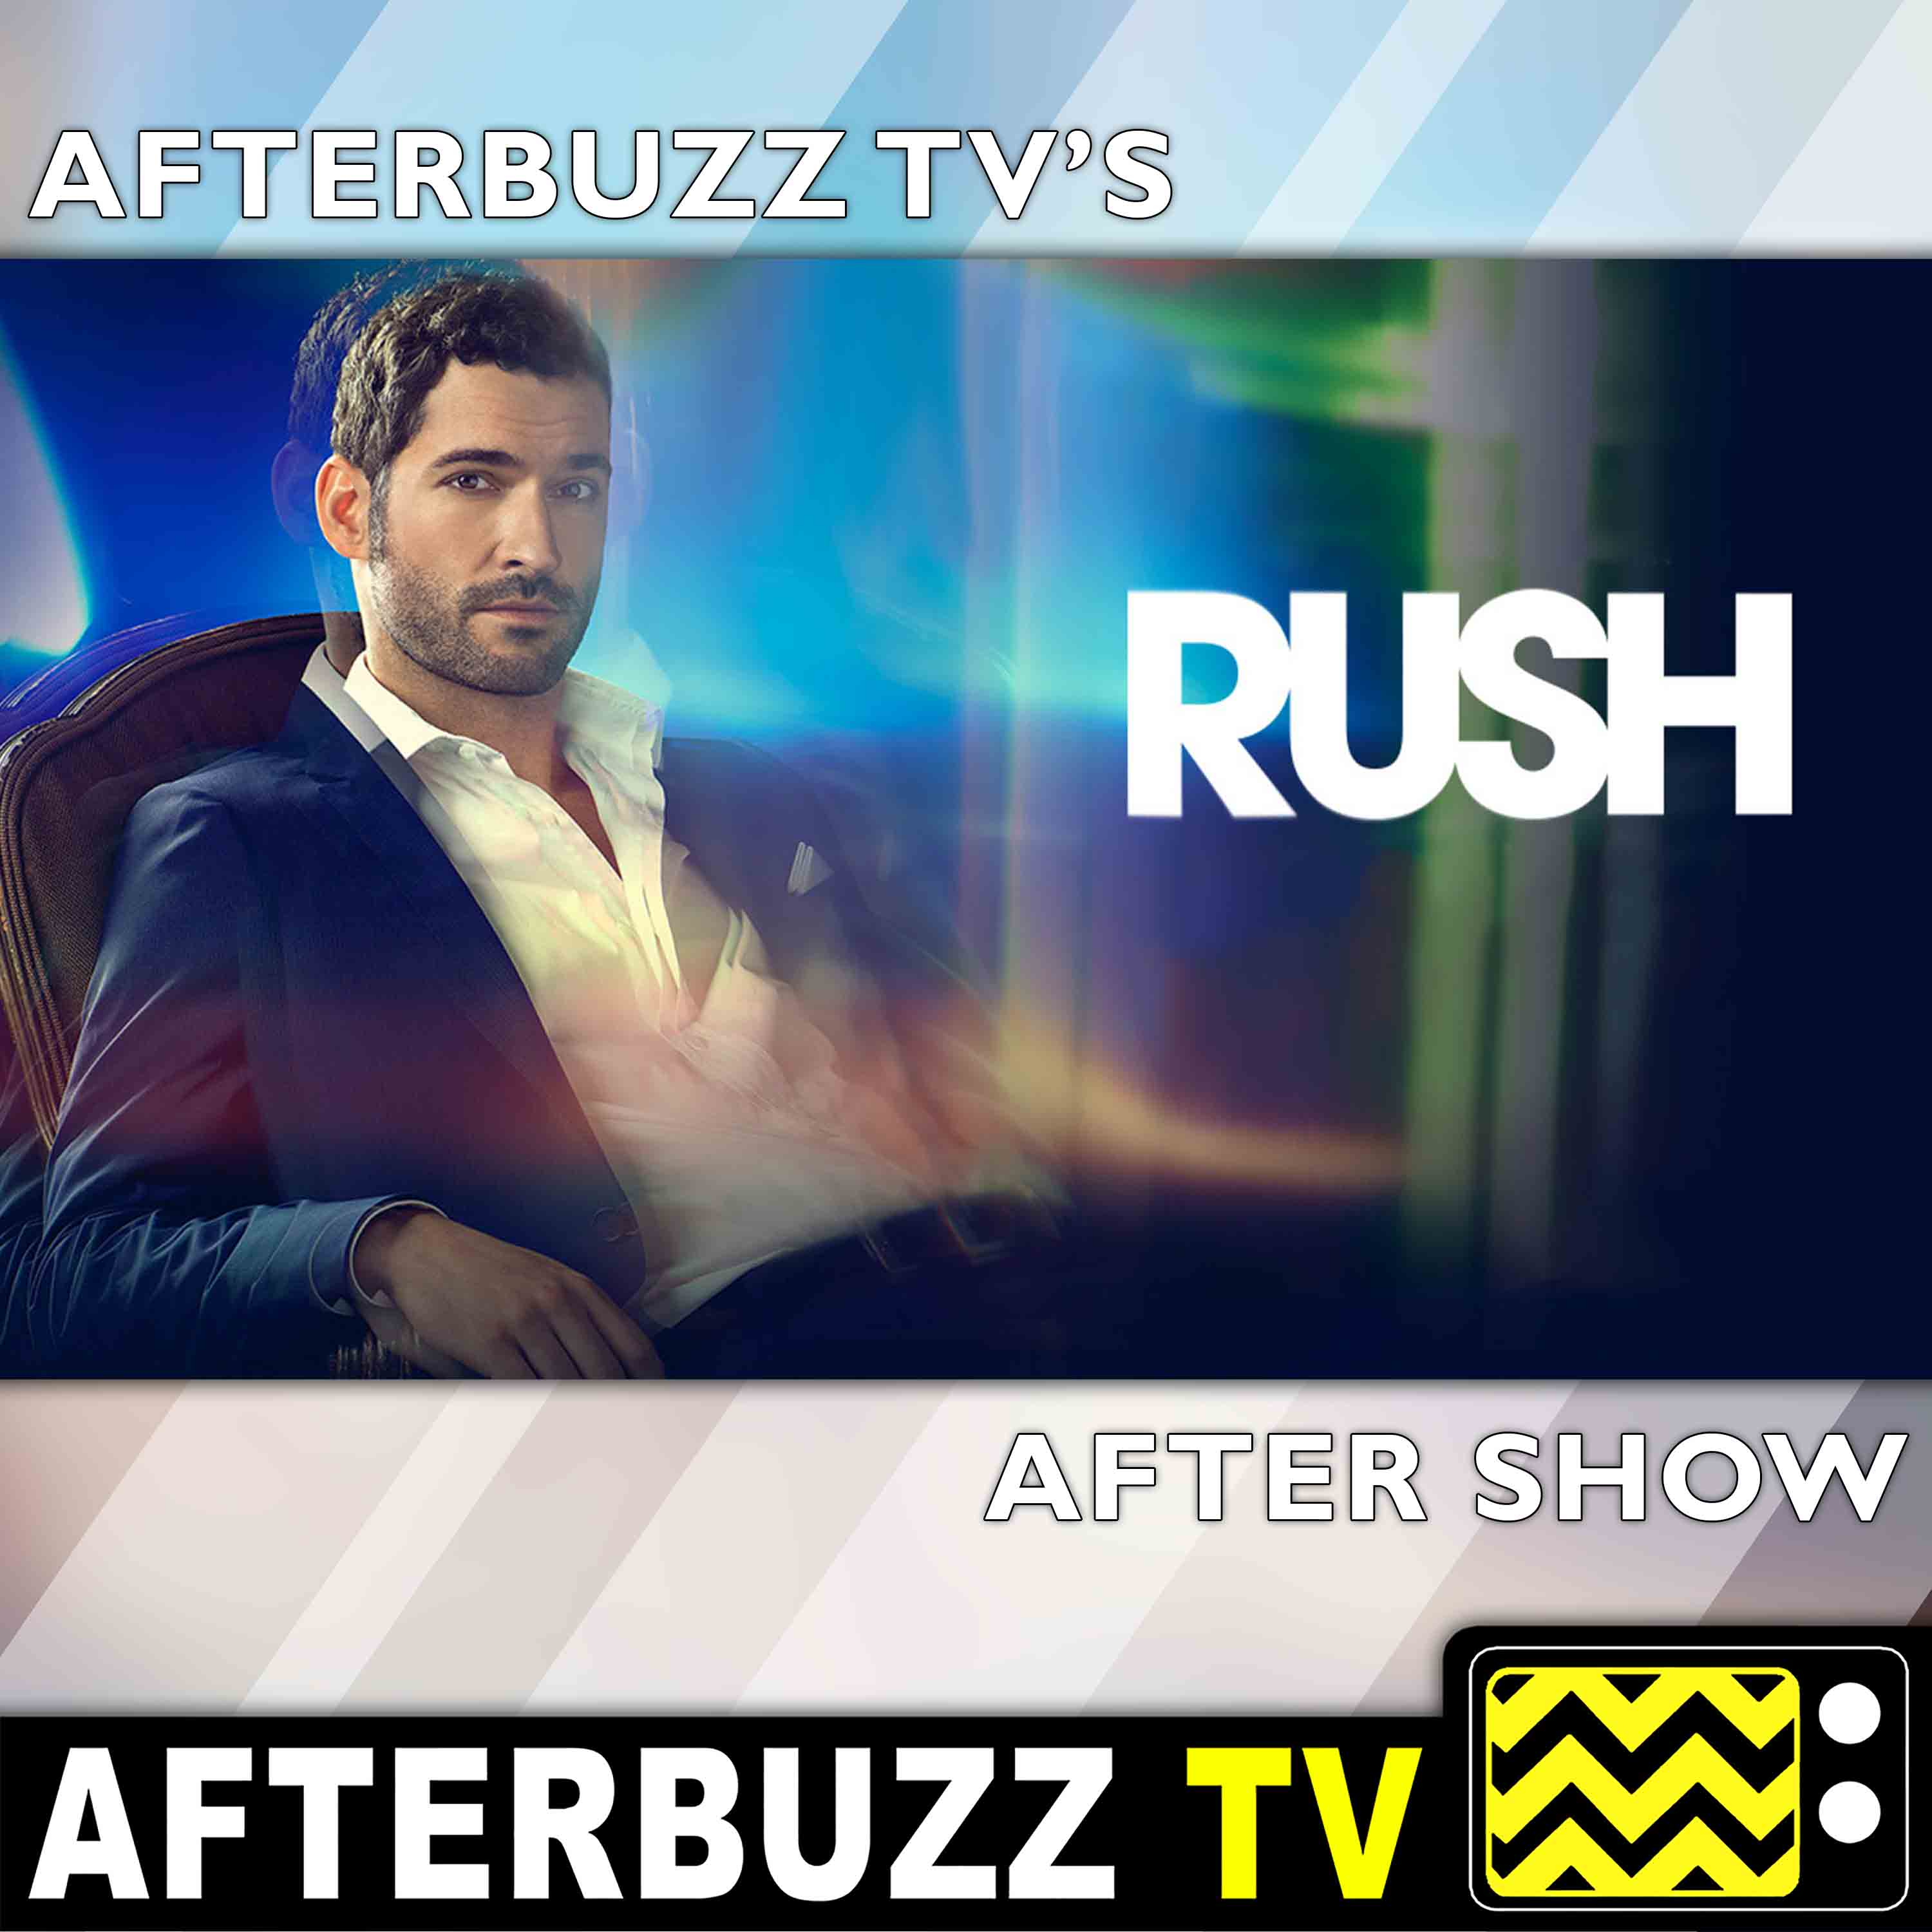 Rush Reviews and After Show